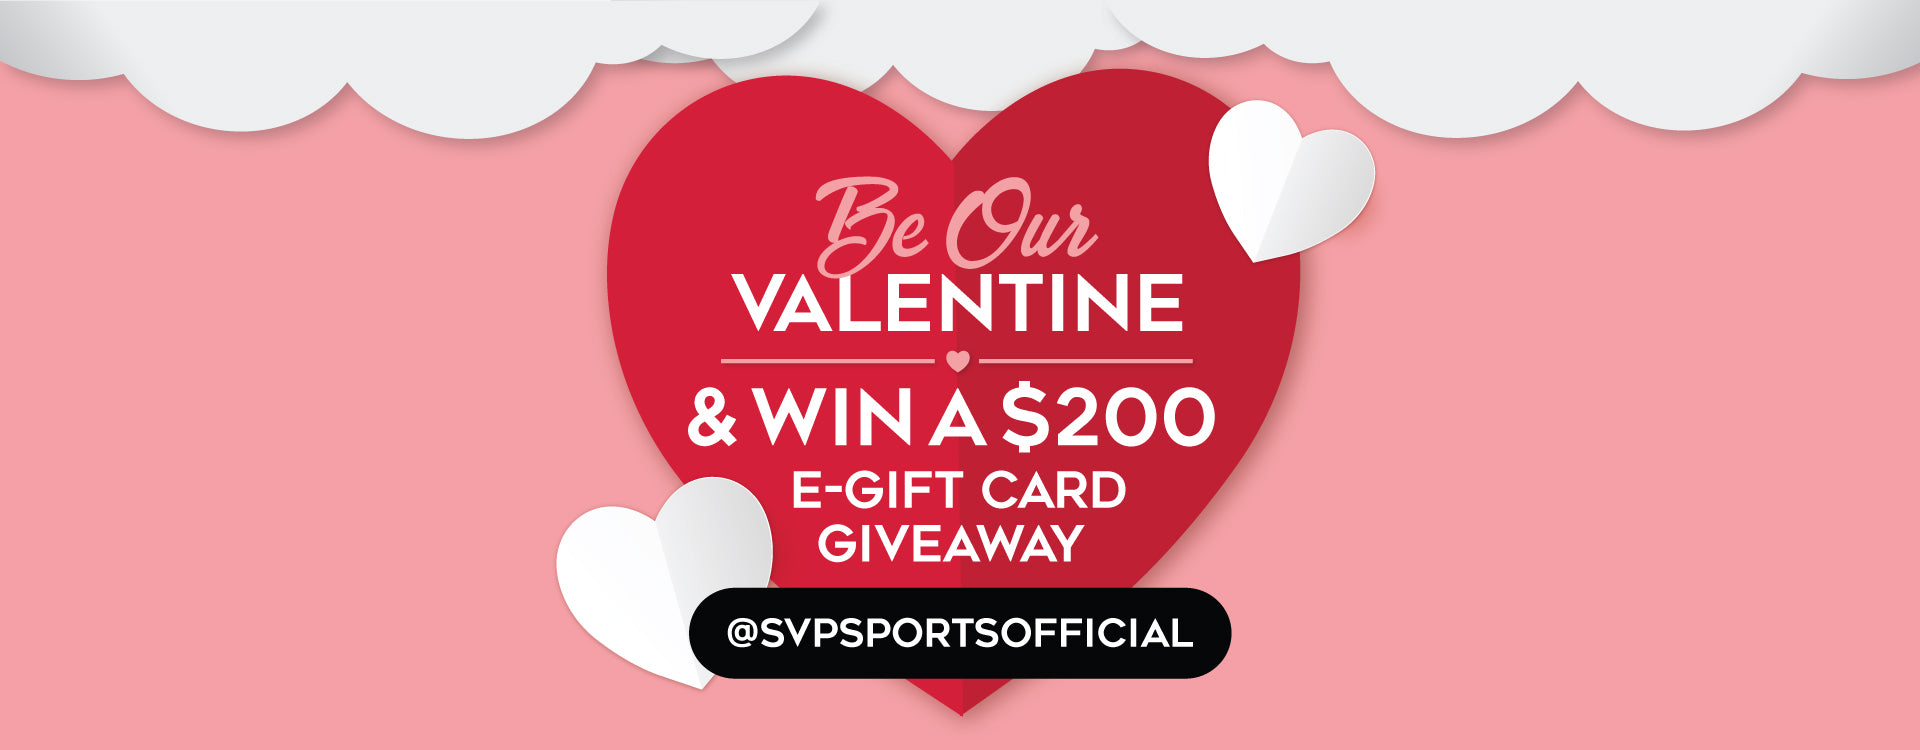 Be Our Valentine $200 E-Gift Card Instagram Giveaway